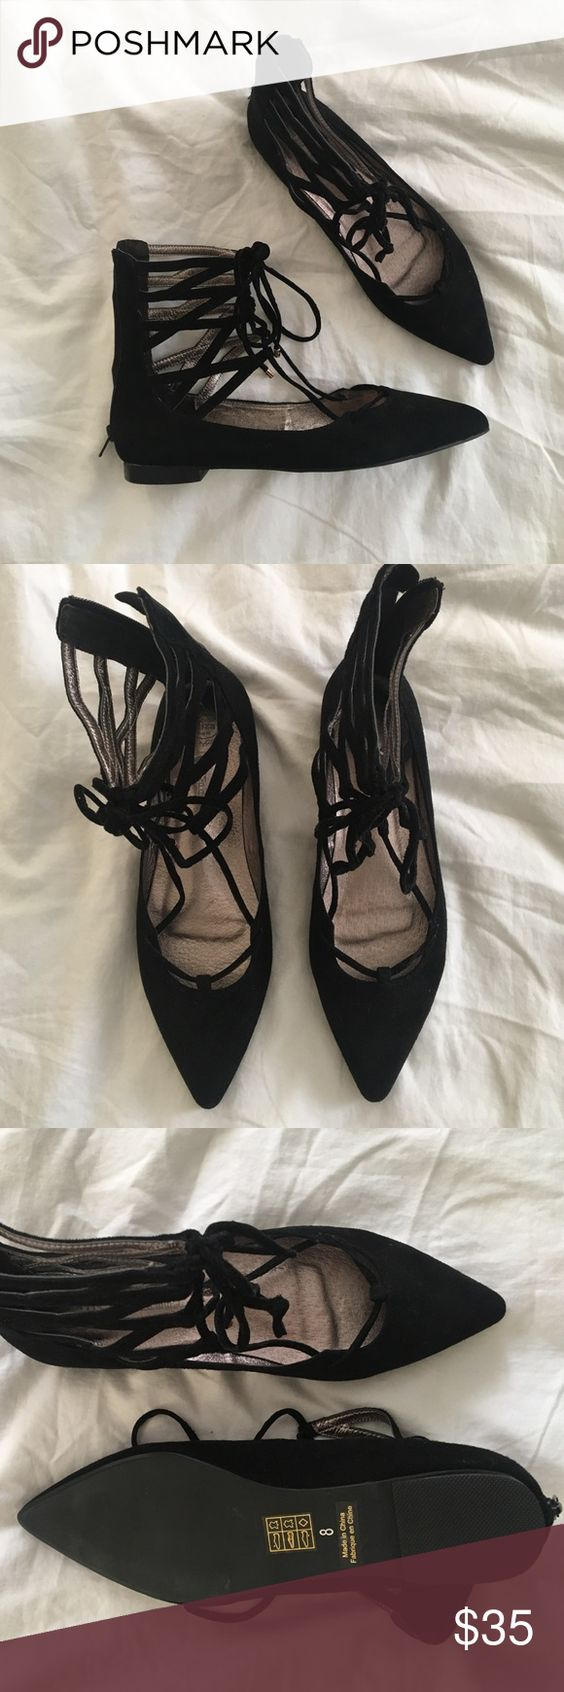 Free People x Jeffrey Campbell black lace up flats Pointed lace-up flats. Zip at the back. NWOT Free People Shoes Flats & Loafers